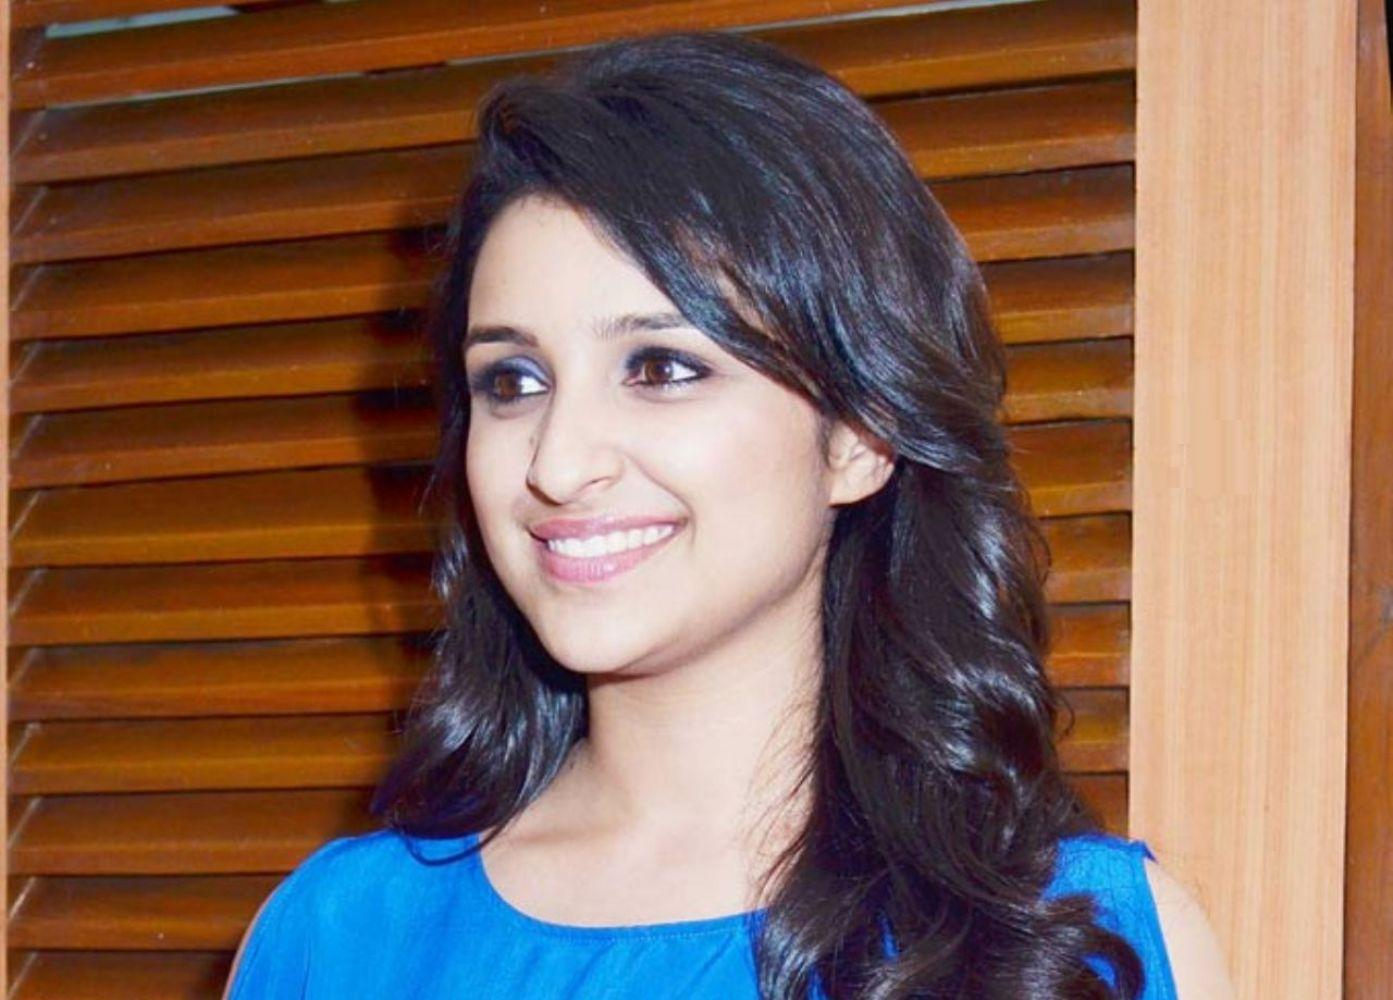 Amazing Parineeti Chopra Cute Look Mobile Hd Desktop Background Free Wallpaper